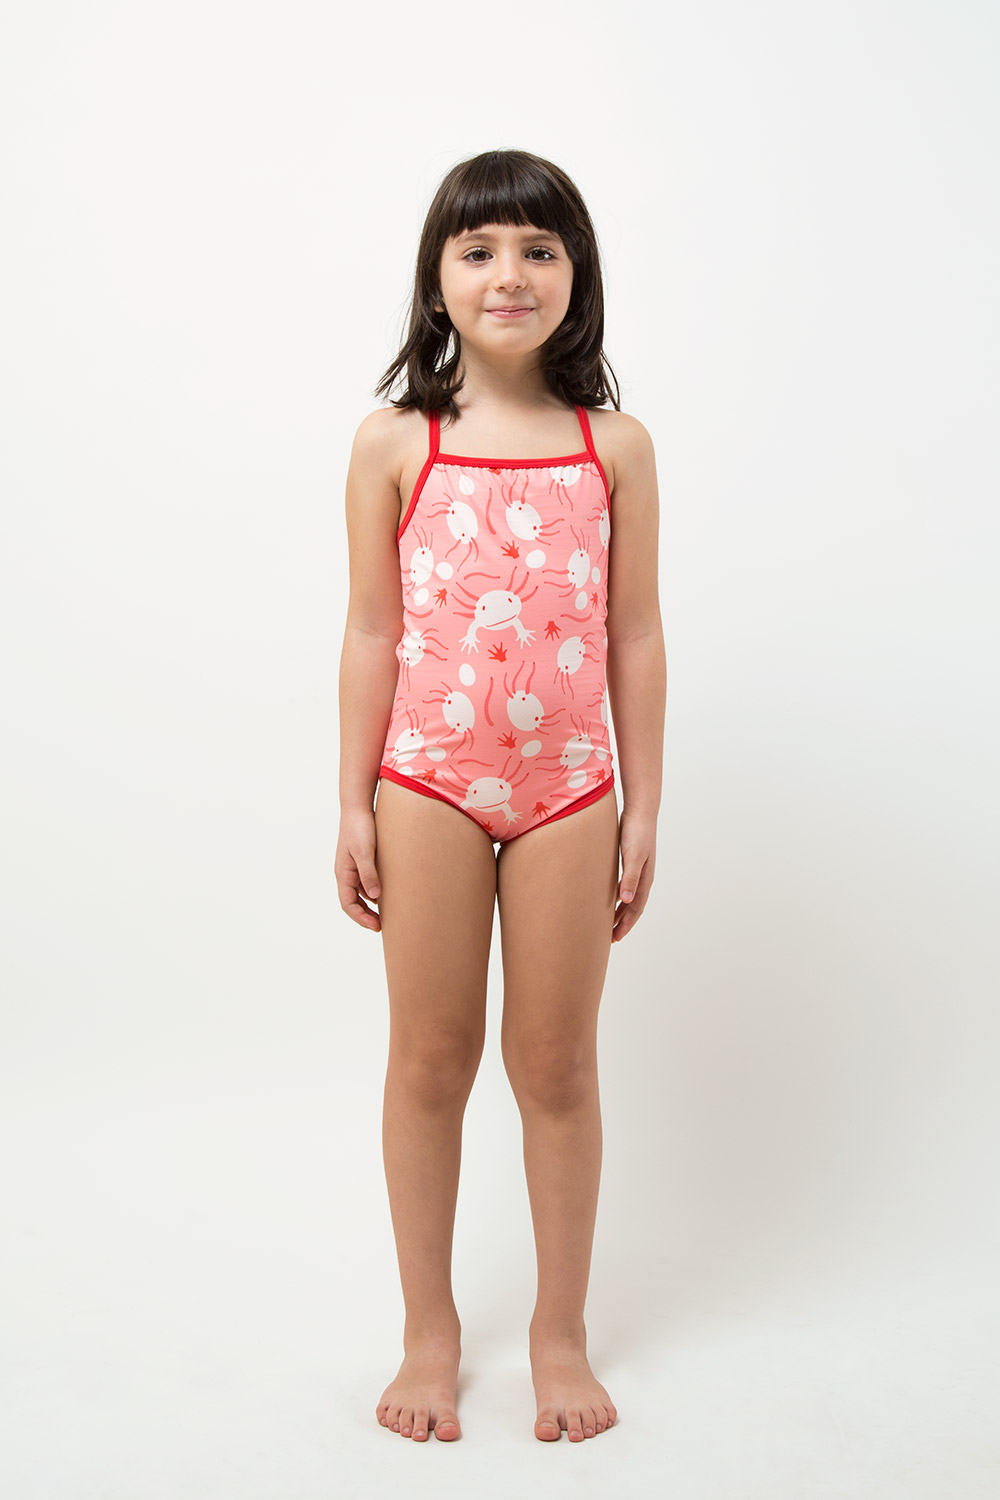 eco friendly one piece swimwear - Axolotl printed - girl front side view